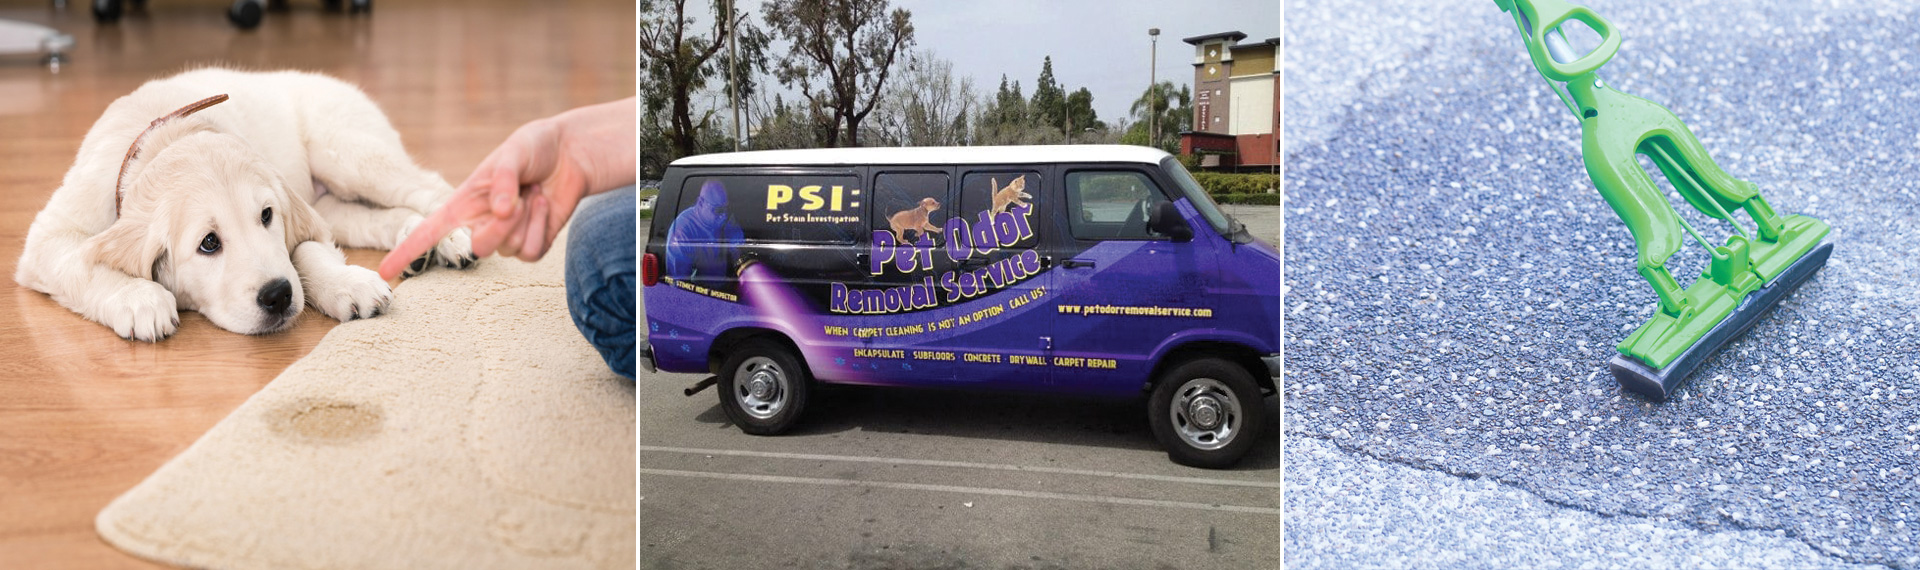 Pet Odor Removal Service Westminster CA